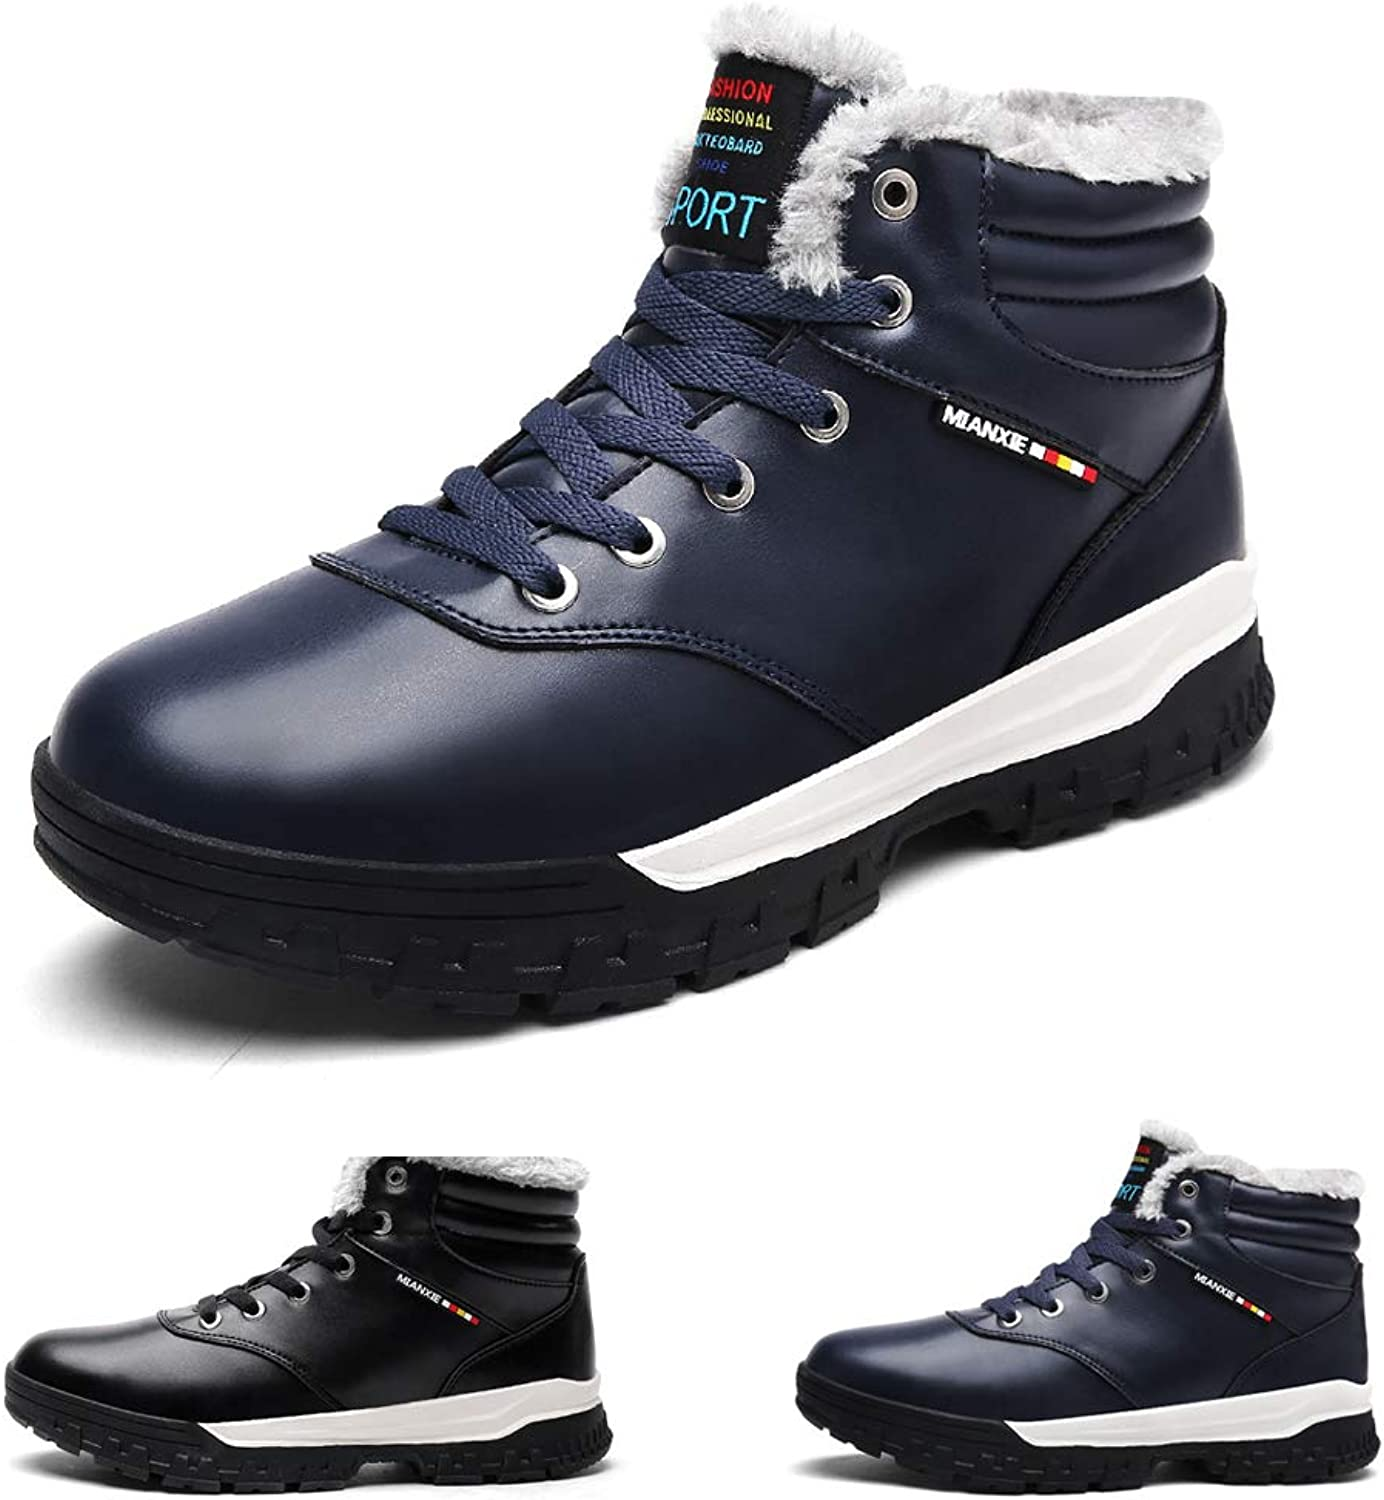 Men Winter Snow Boots Warm Leather Fur Lined Non Slip Casual Outdoor Boots High Rise shoes Lace up Trekking shoes